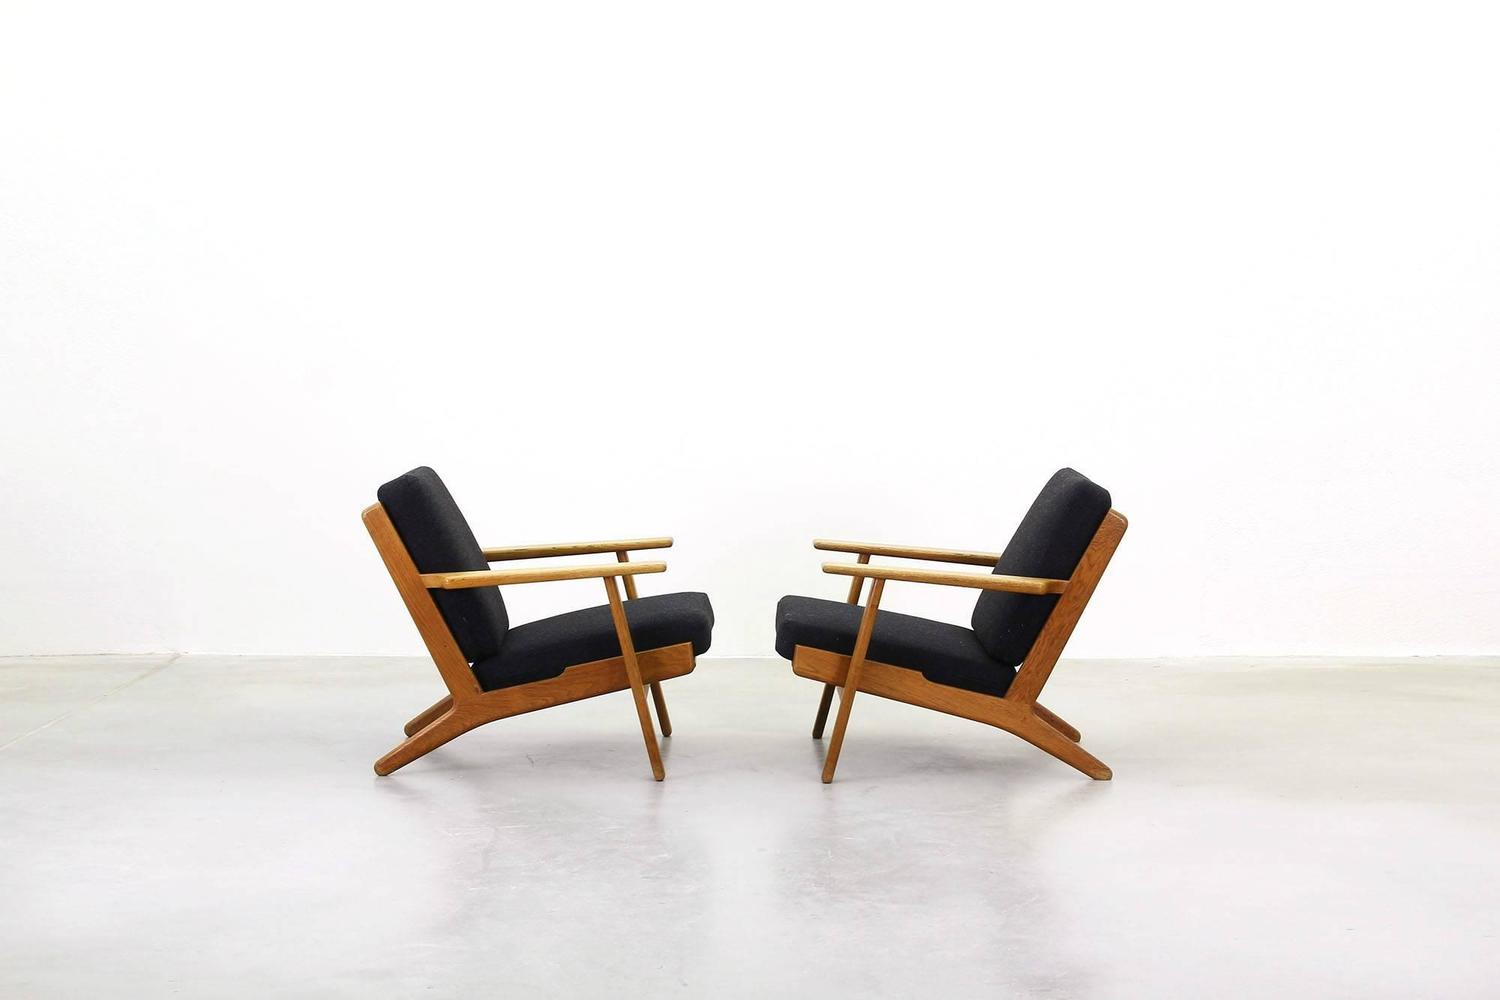 Lounge easy chairs by hans j wegner for getama ge 290 for for Lounge chair kopie